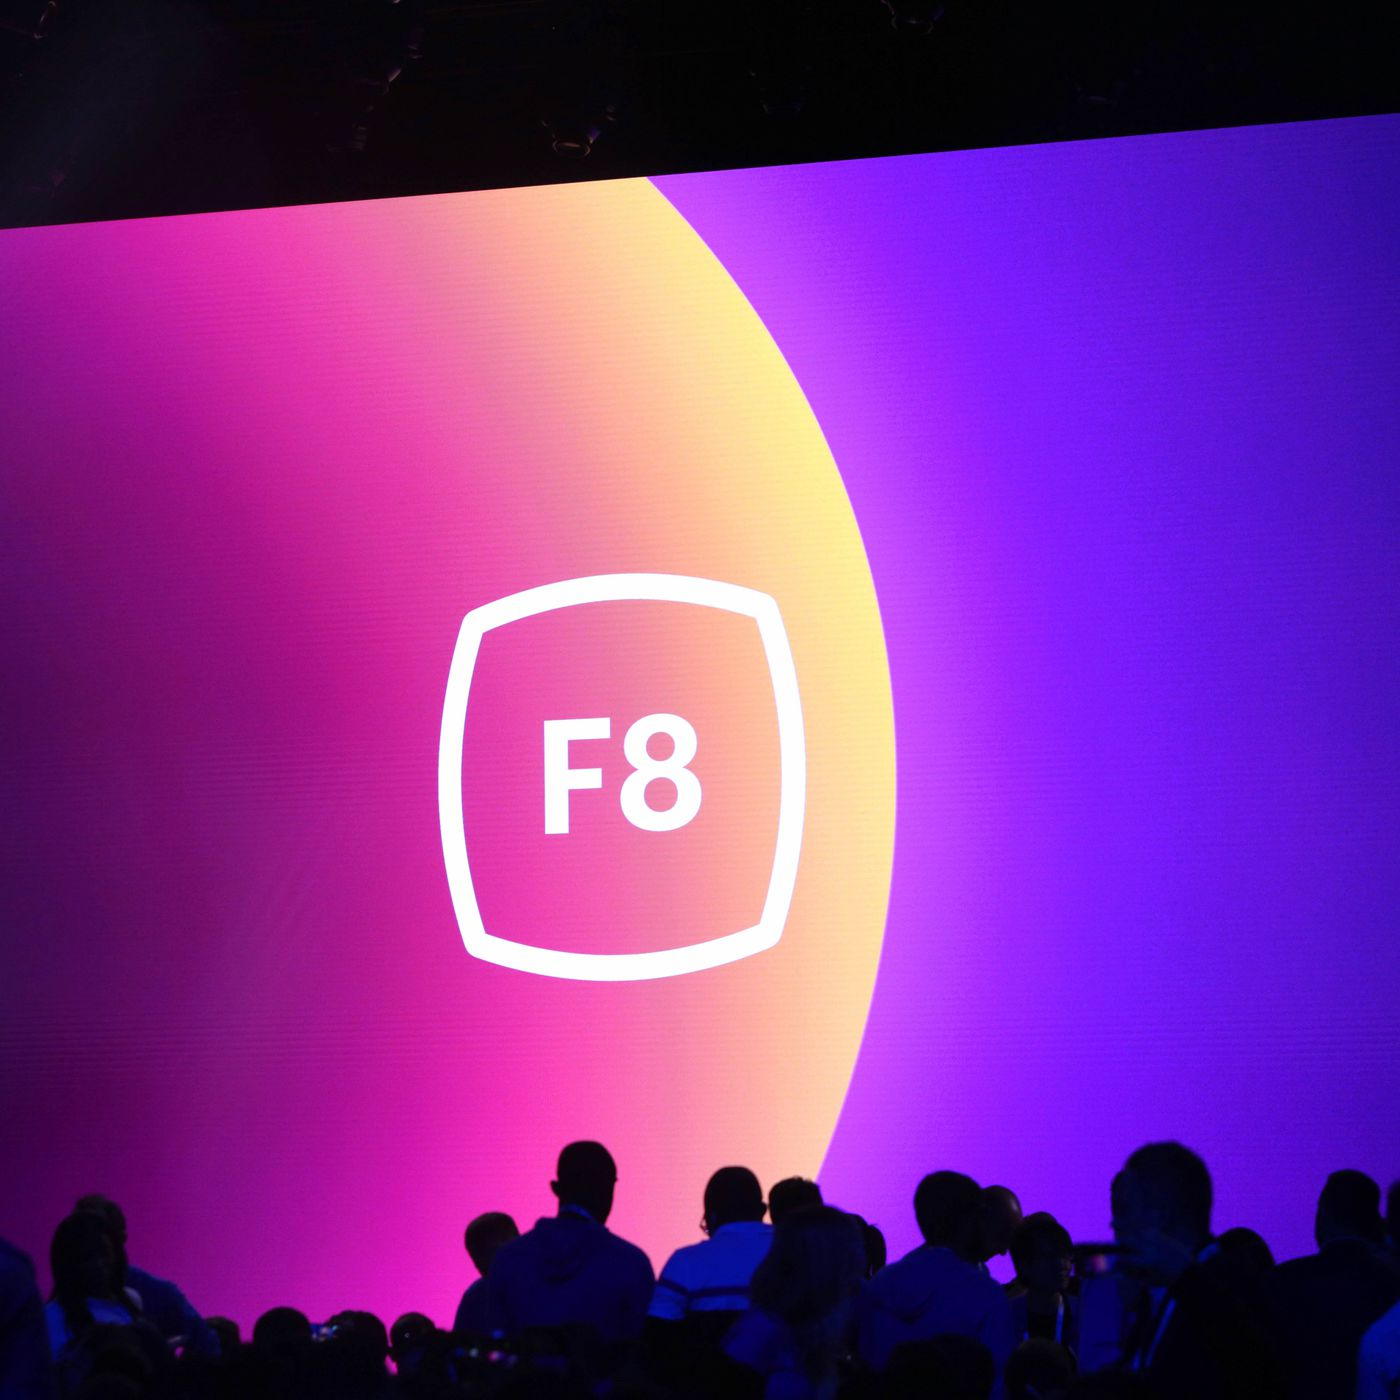 The 5 biggest announcements from Facebook's F8 developer